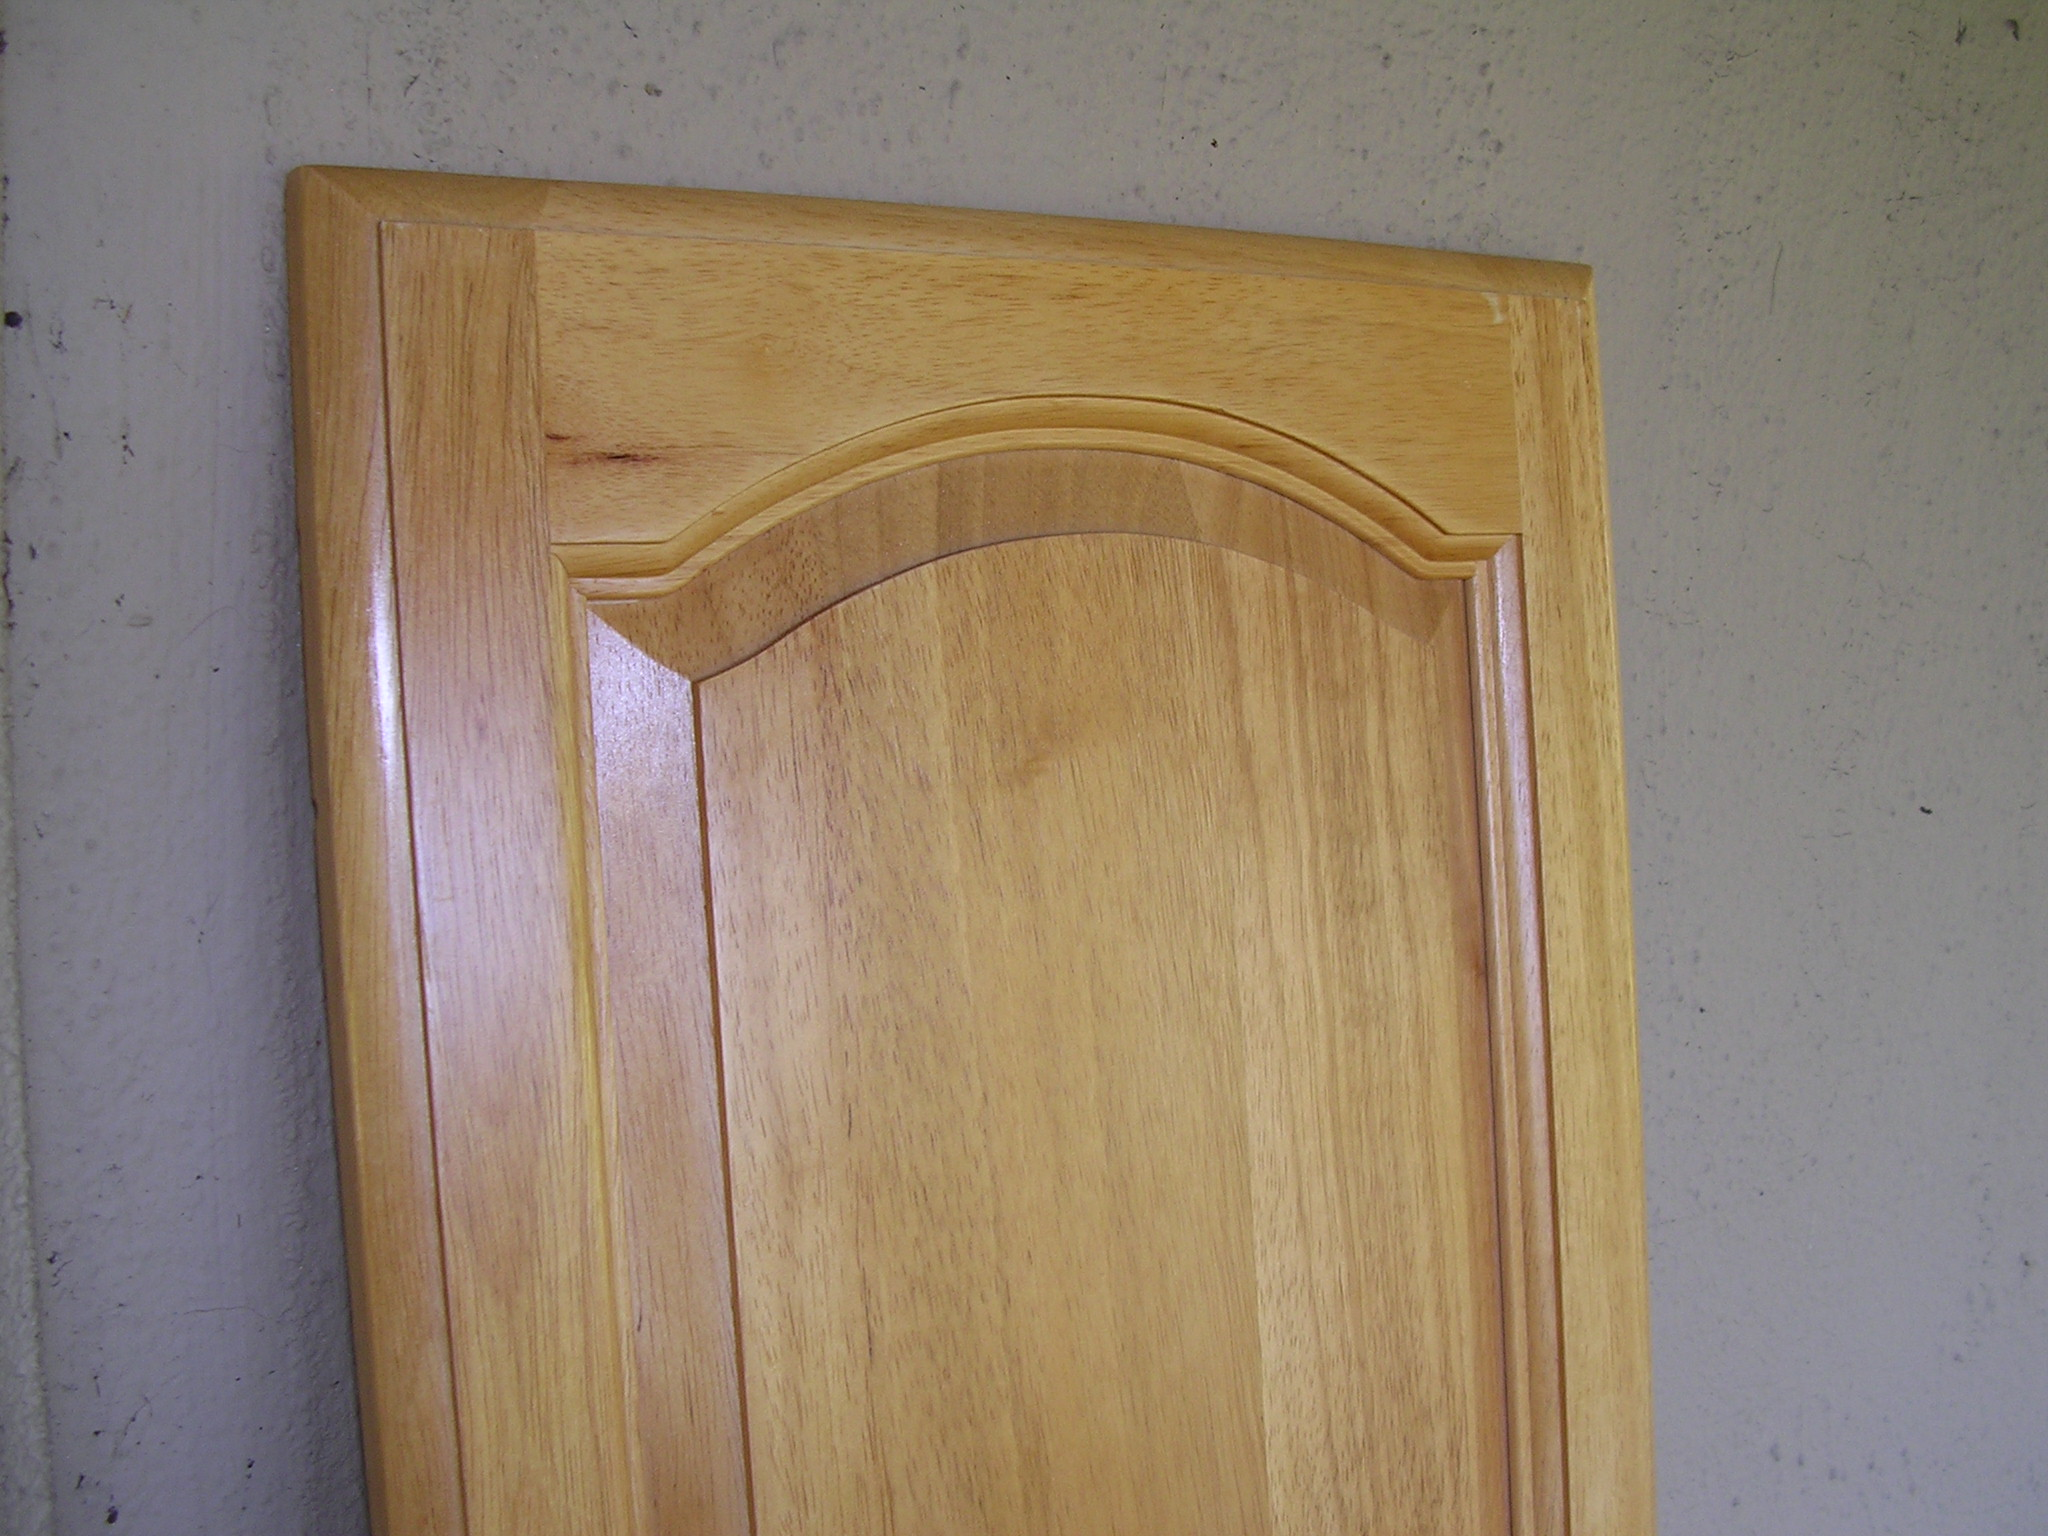 Rta cabinet broker 5b china oak cathedral arched doors for Kitchen cabinets doors